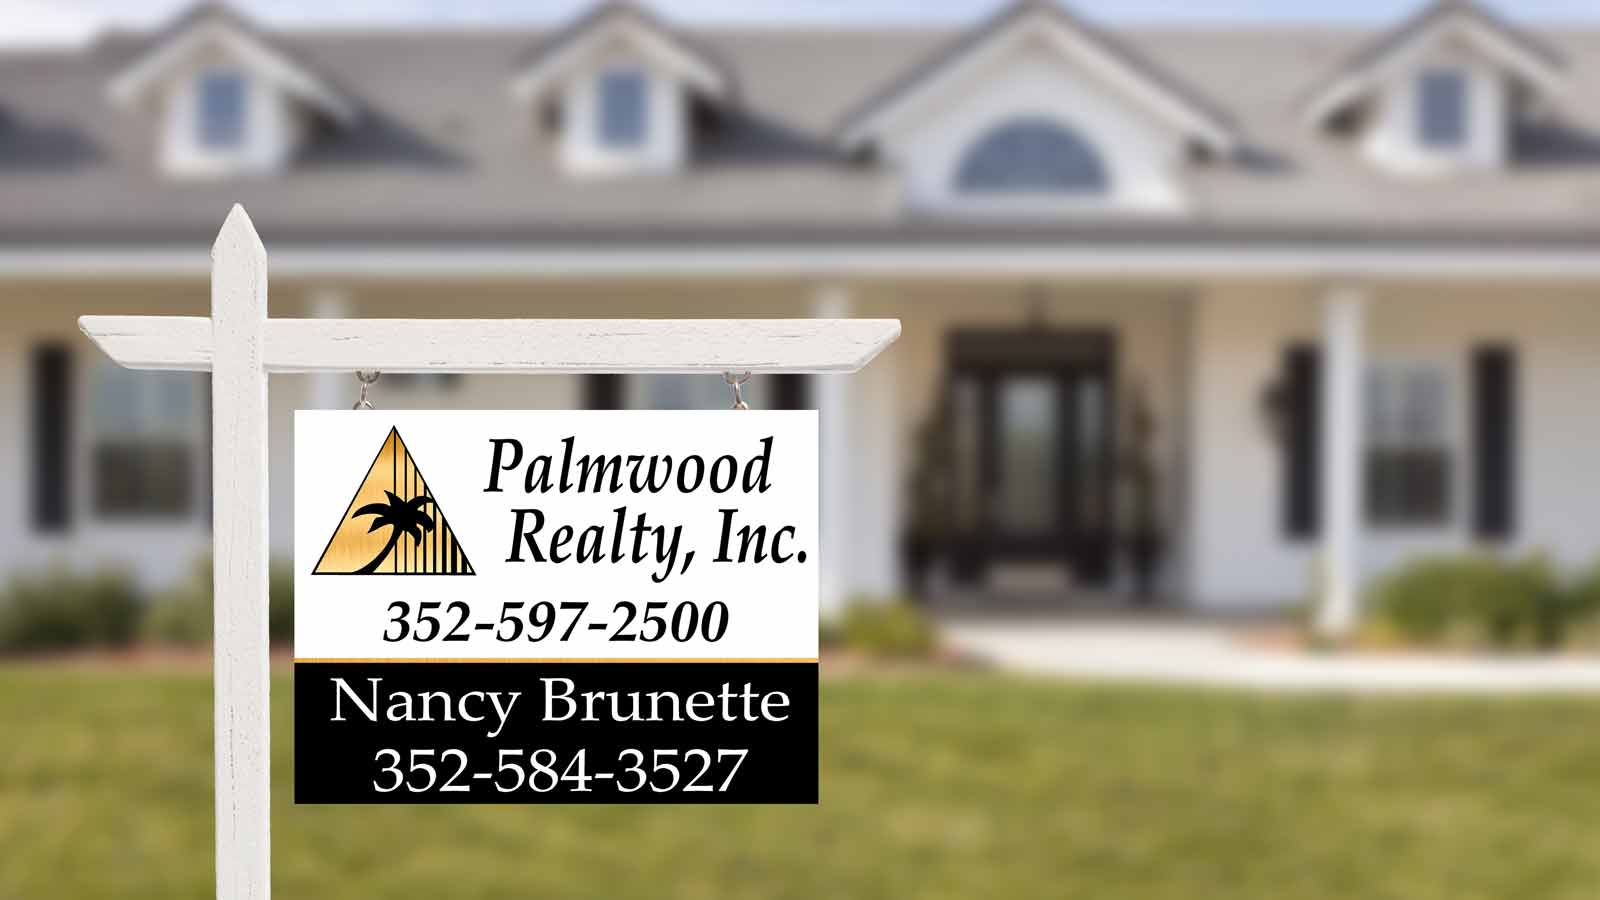 Palmwood Realty for sale sign